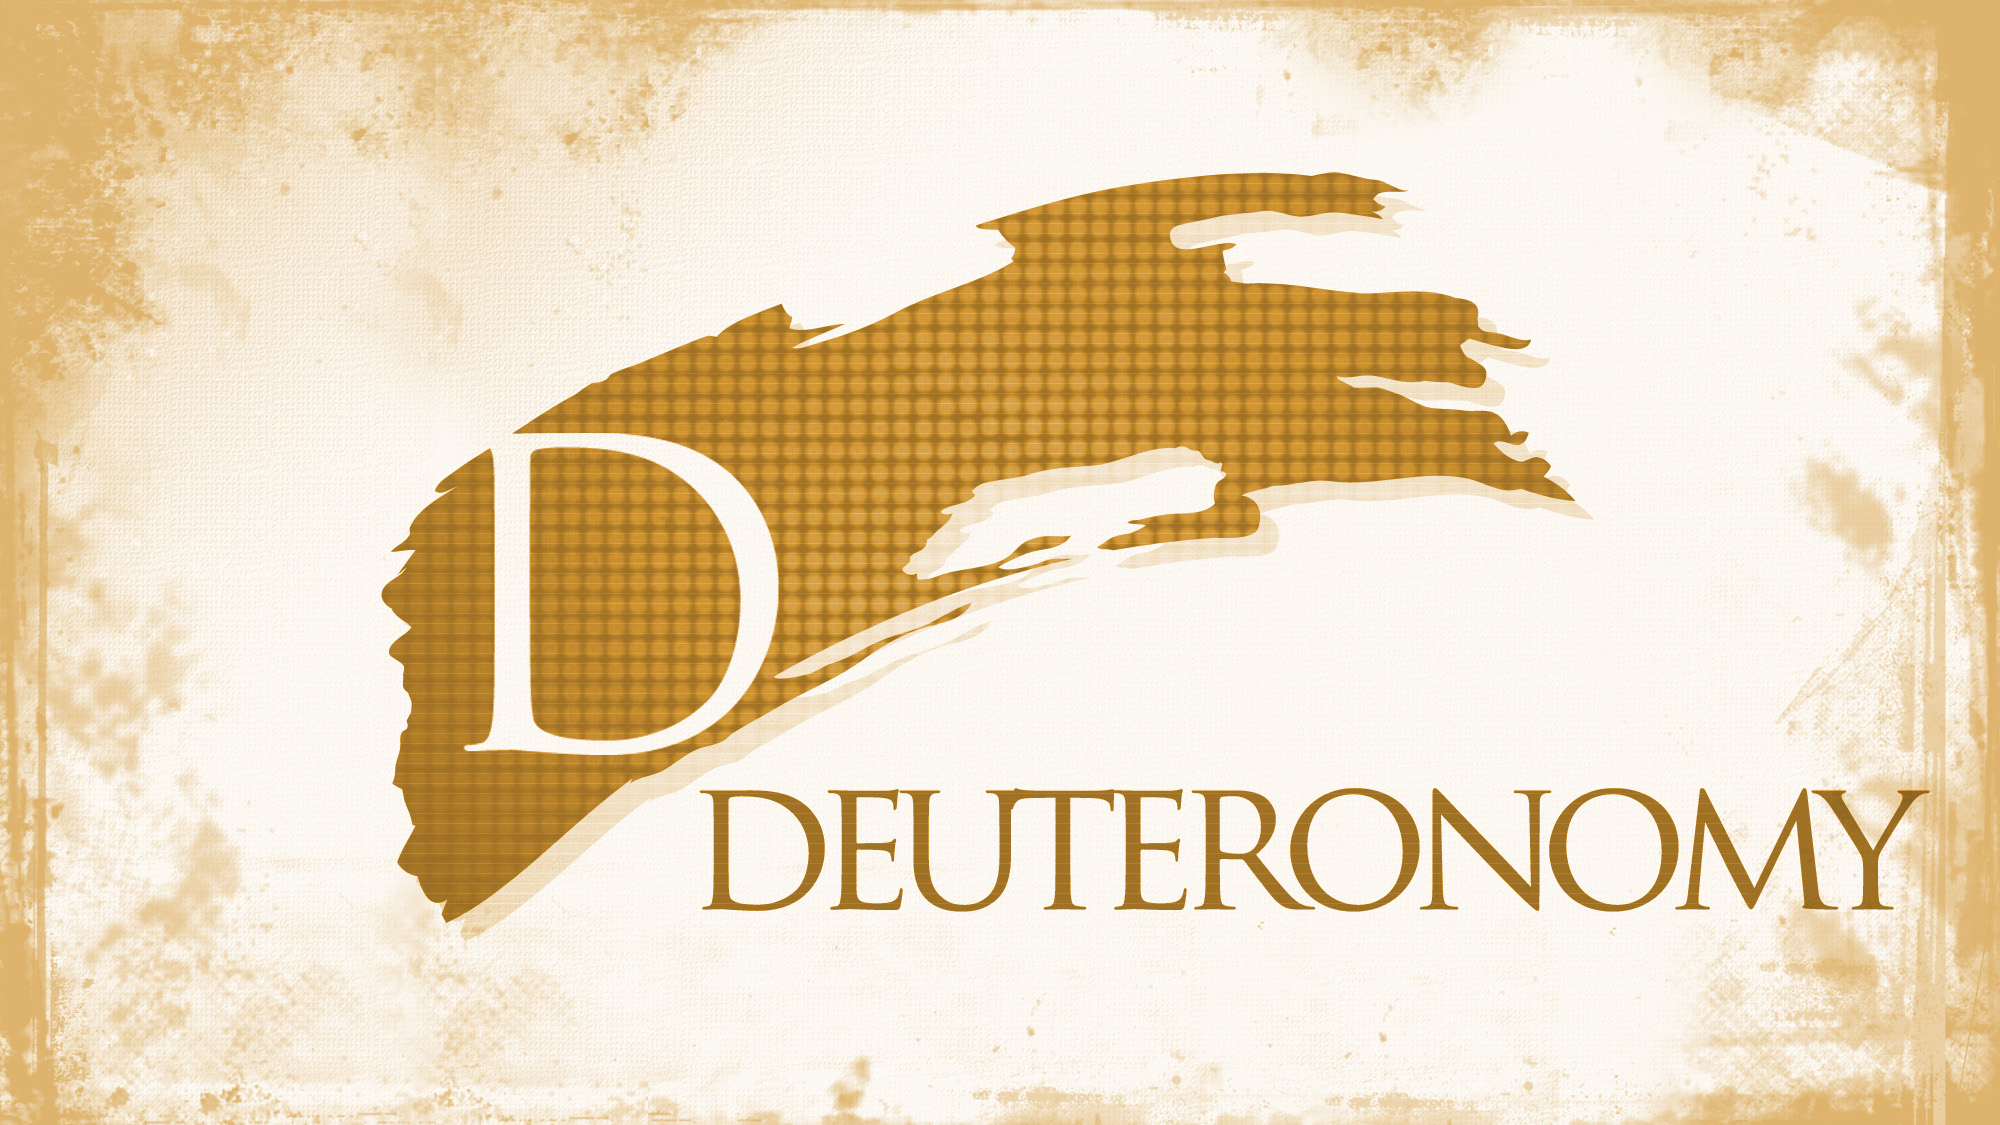 Deuteronomy Chapter 34 Summary